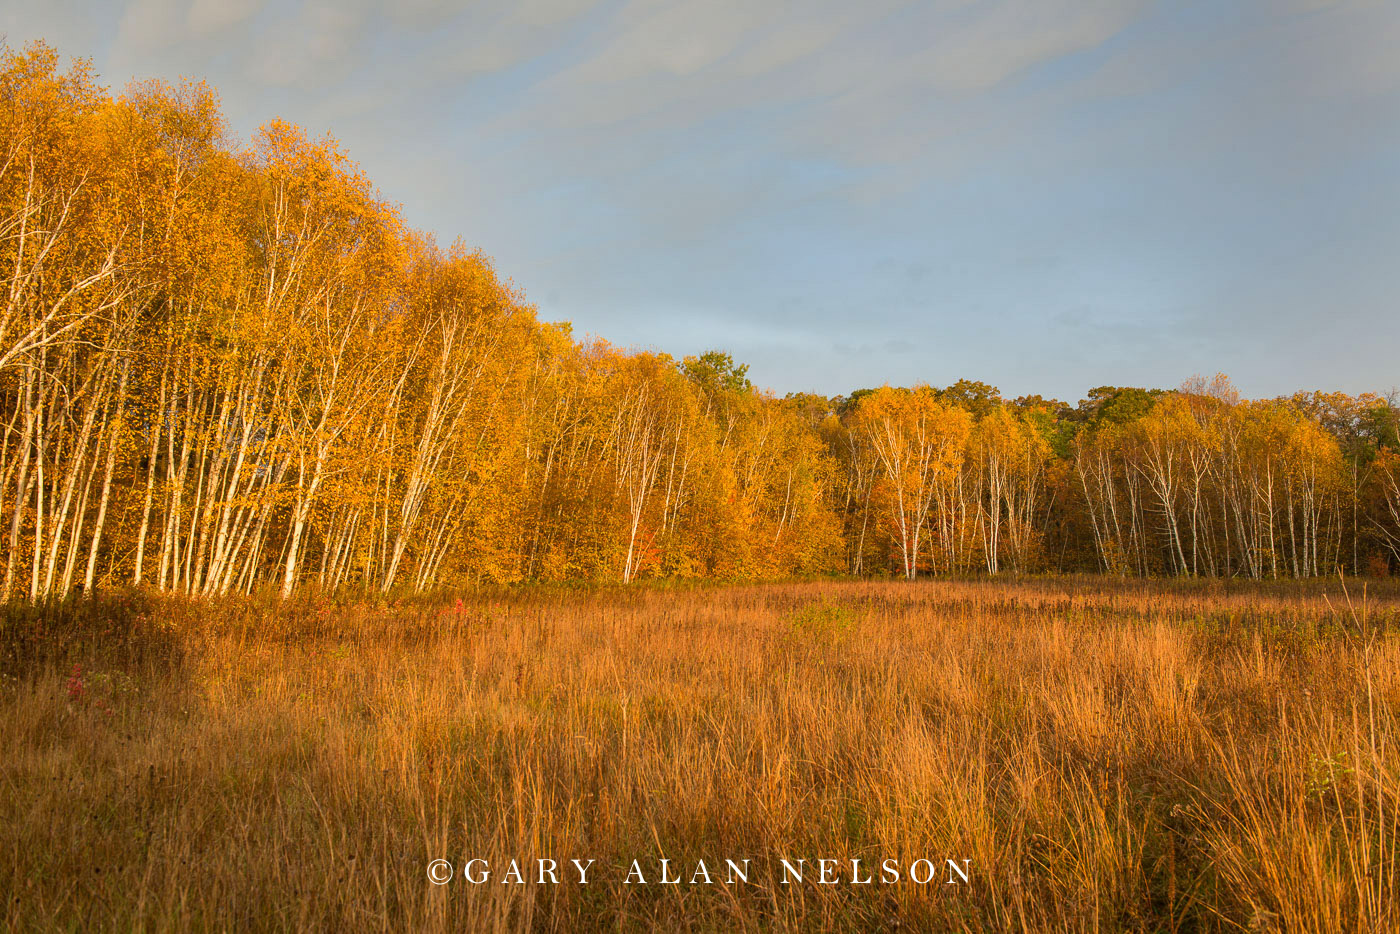 Woods and prairie in autumn near the St. Croix River, Wild River State Park, Minnesota